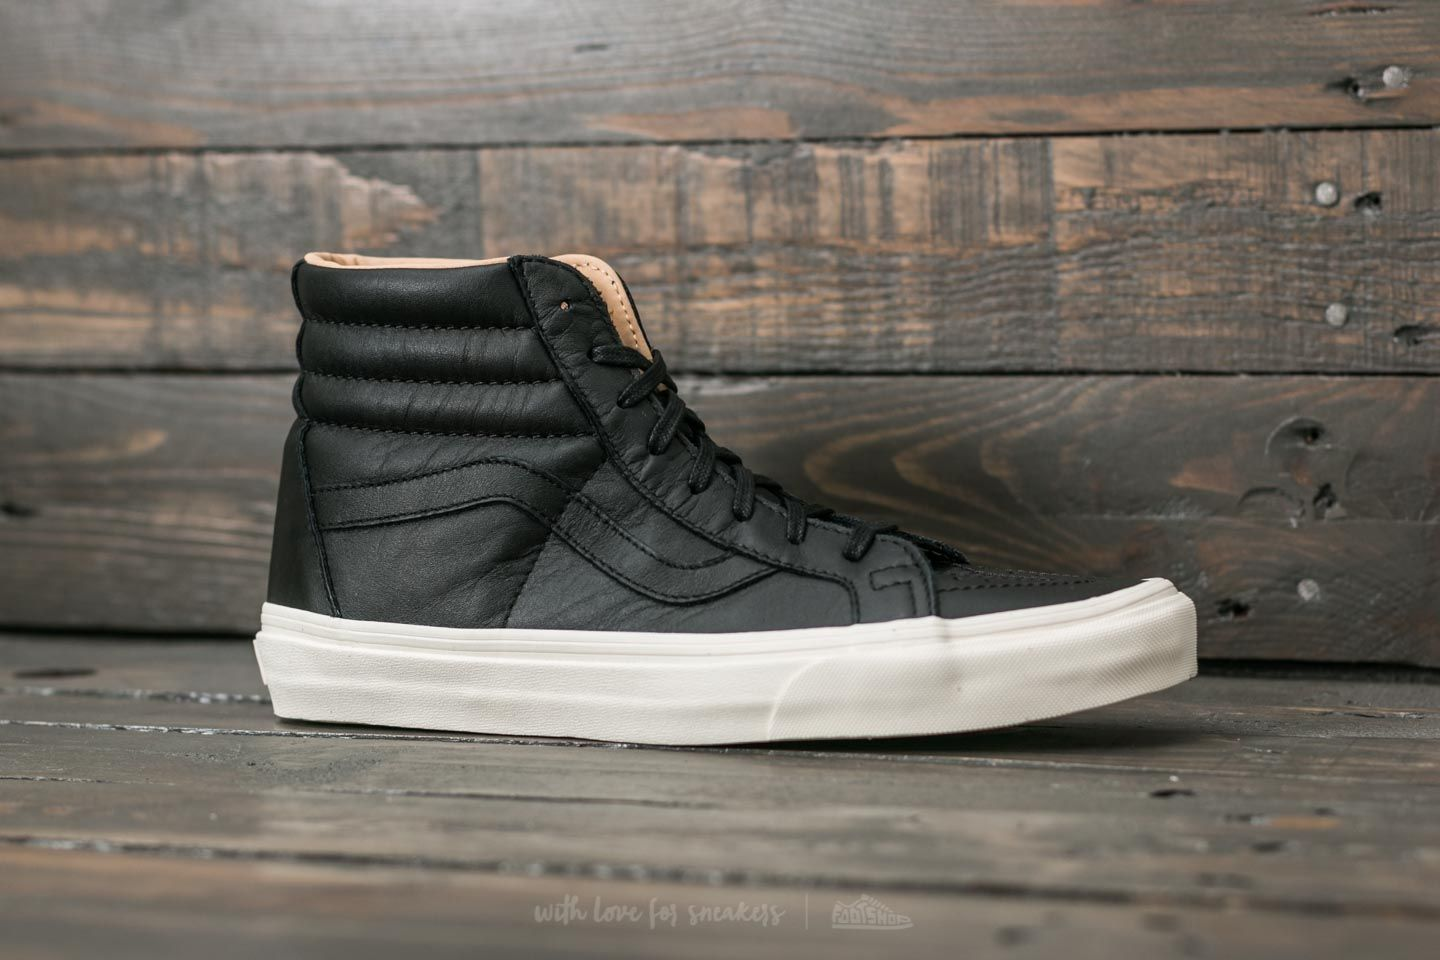 f59a6cbe6b Vans Sk8-Hi Reissue (Lux Leather) Black/ Porcini | Footshop